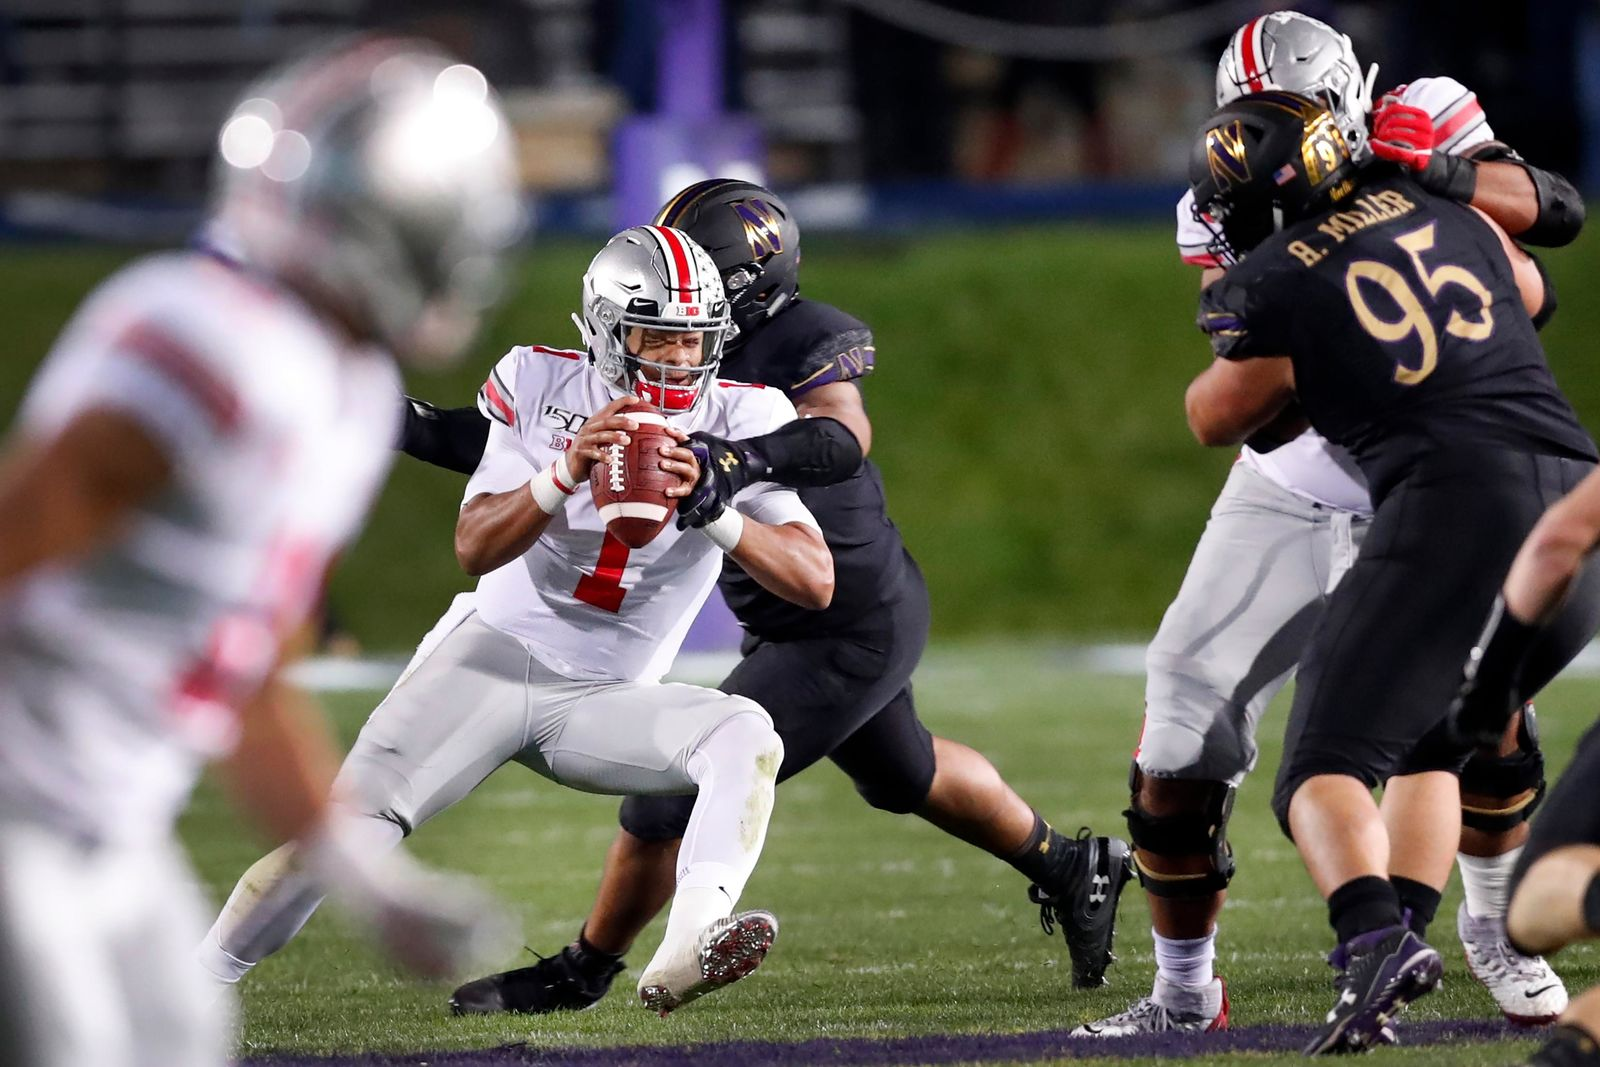 Ohio State quarterback Justin Fields (1) escapes pressure from Northwestern defensive end Earnest Brown IV during the first half of an NCAA college football game Friday, Oct. 18, 2019, in Evanston, Ill. (AP Photo/Charles Rex Arbogast)